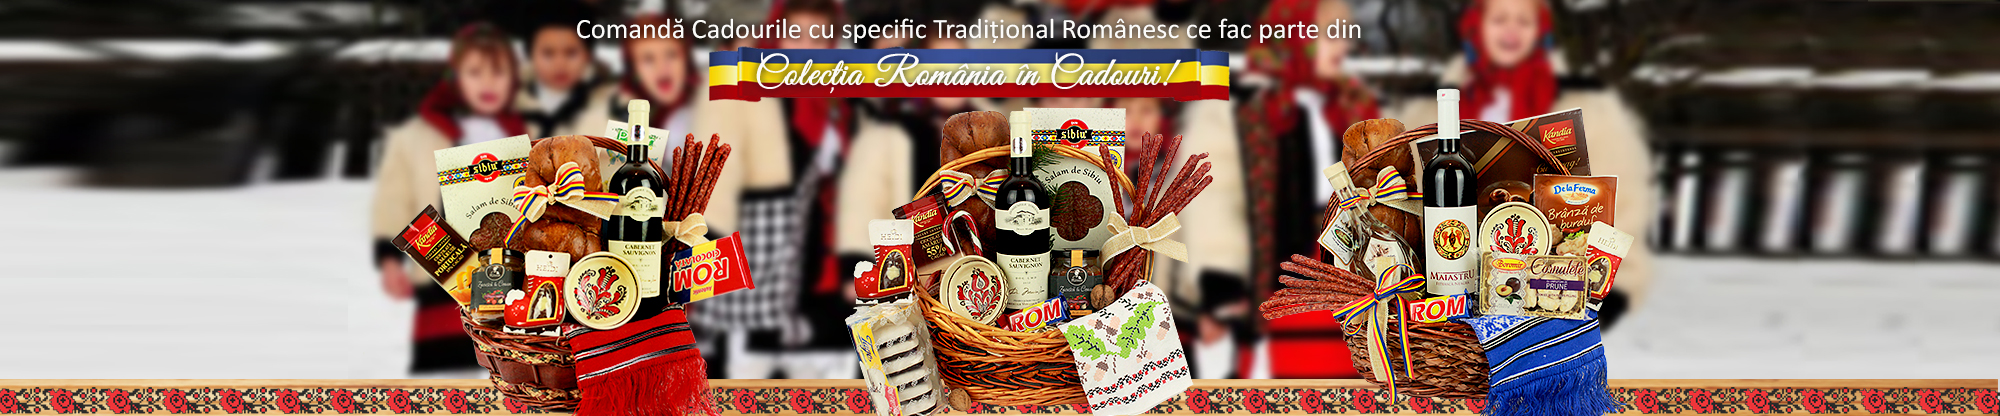 Craciun Traditional